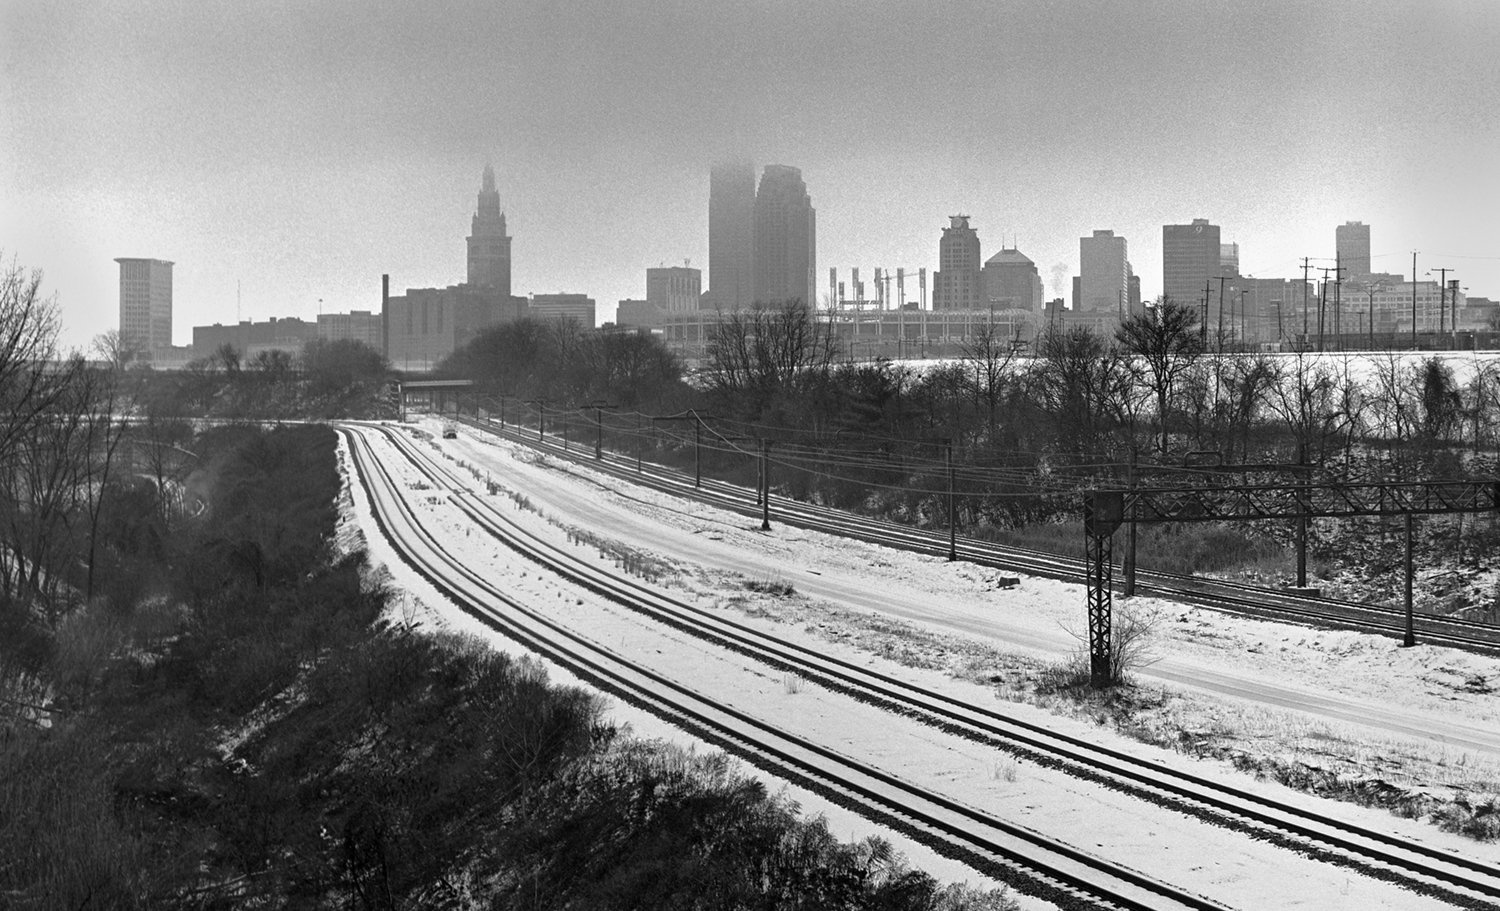 Skyline and Rails Cleveland, OH 6x6 BW film